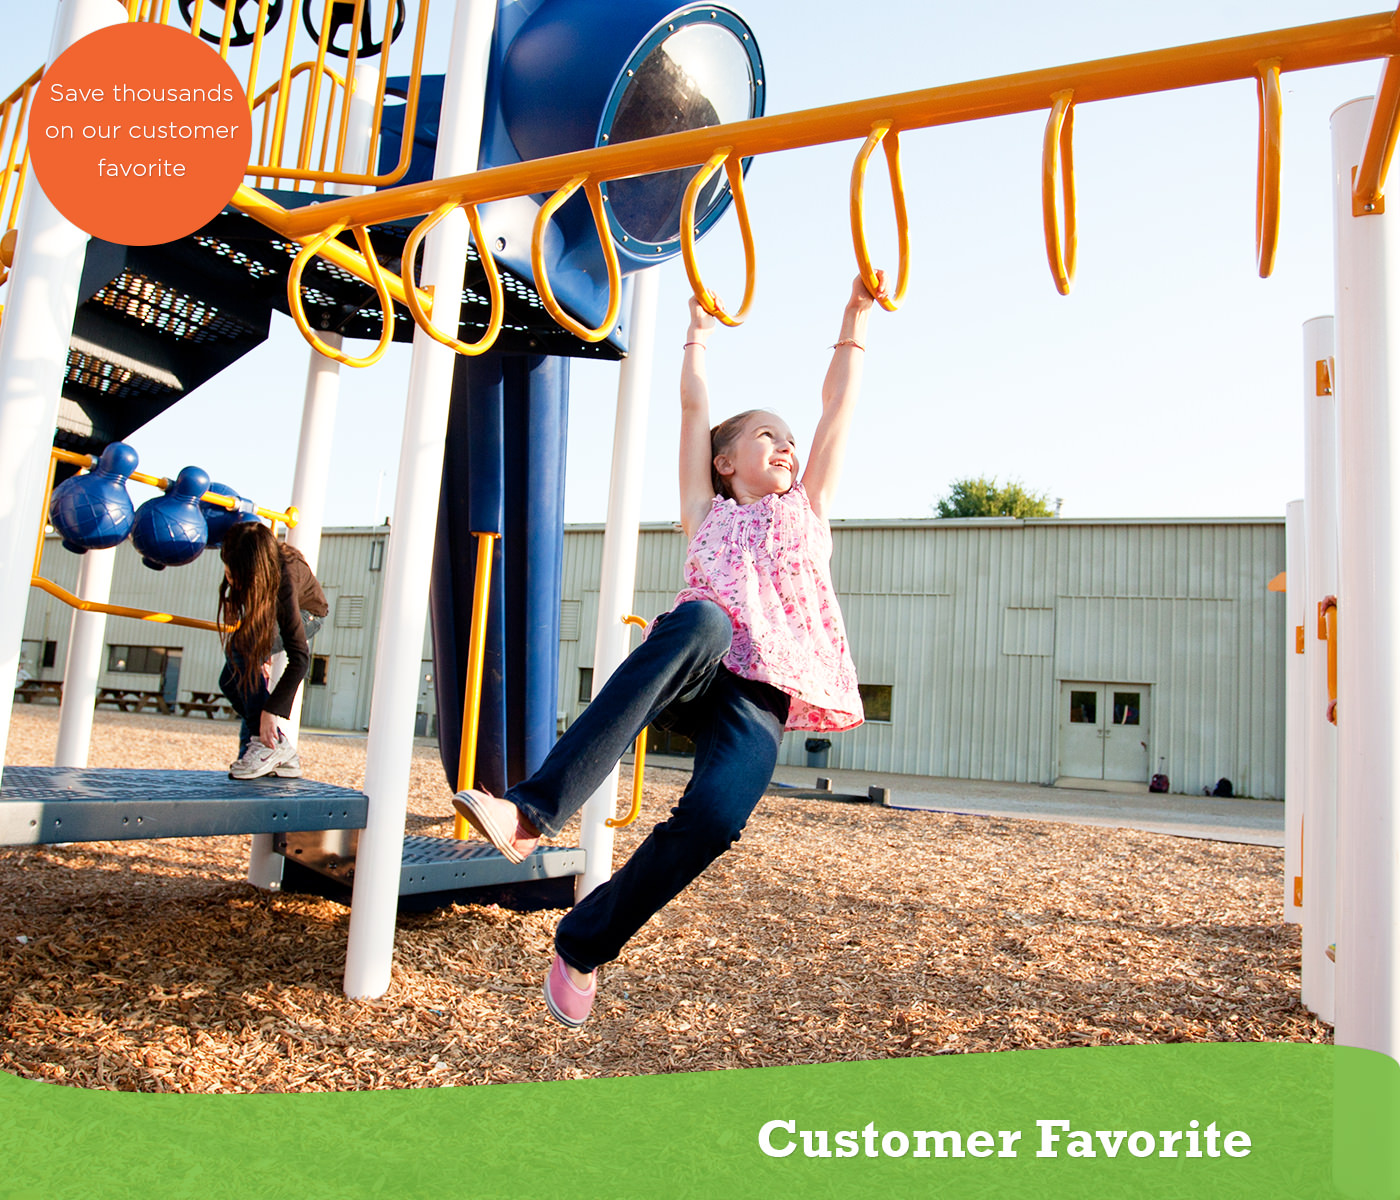 The customer favorite play structure is a great seller.